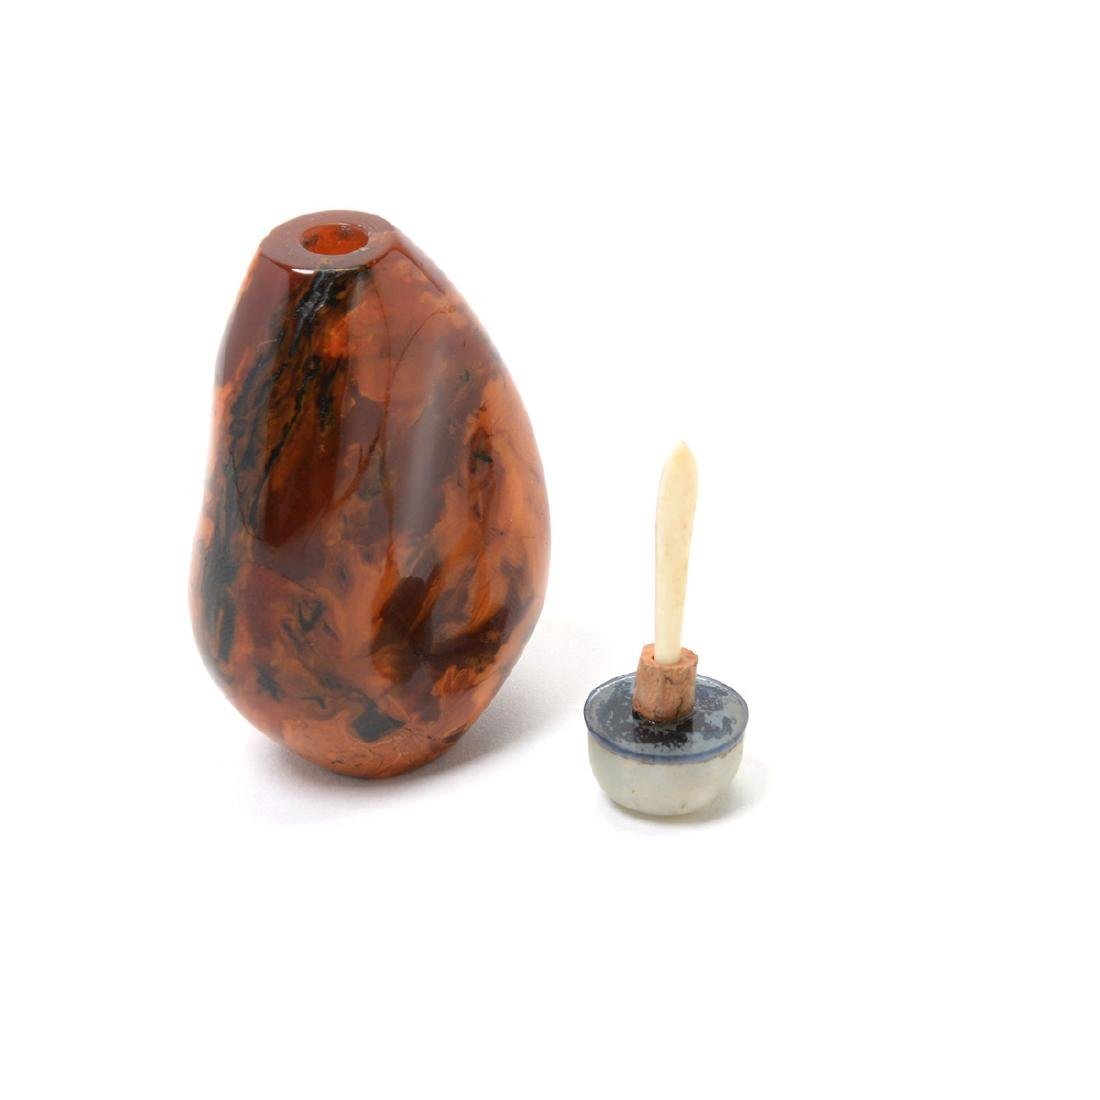 Two Pebble Form Root Amber Snuff Bottles, 19th C - 5